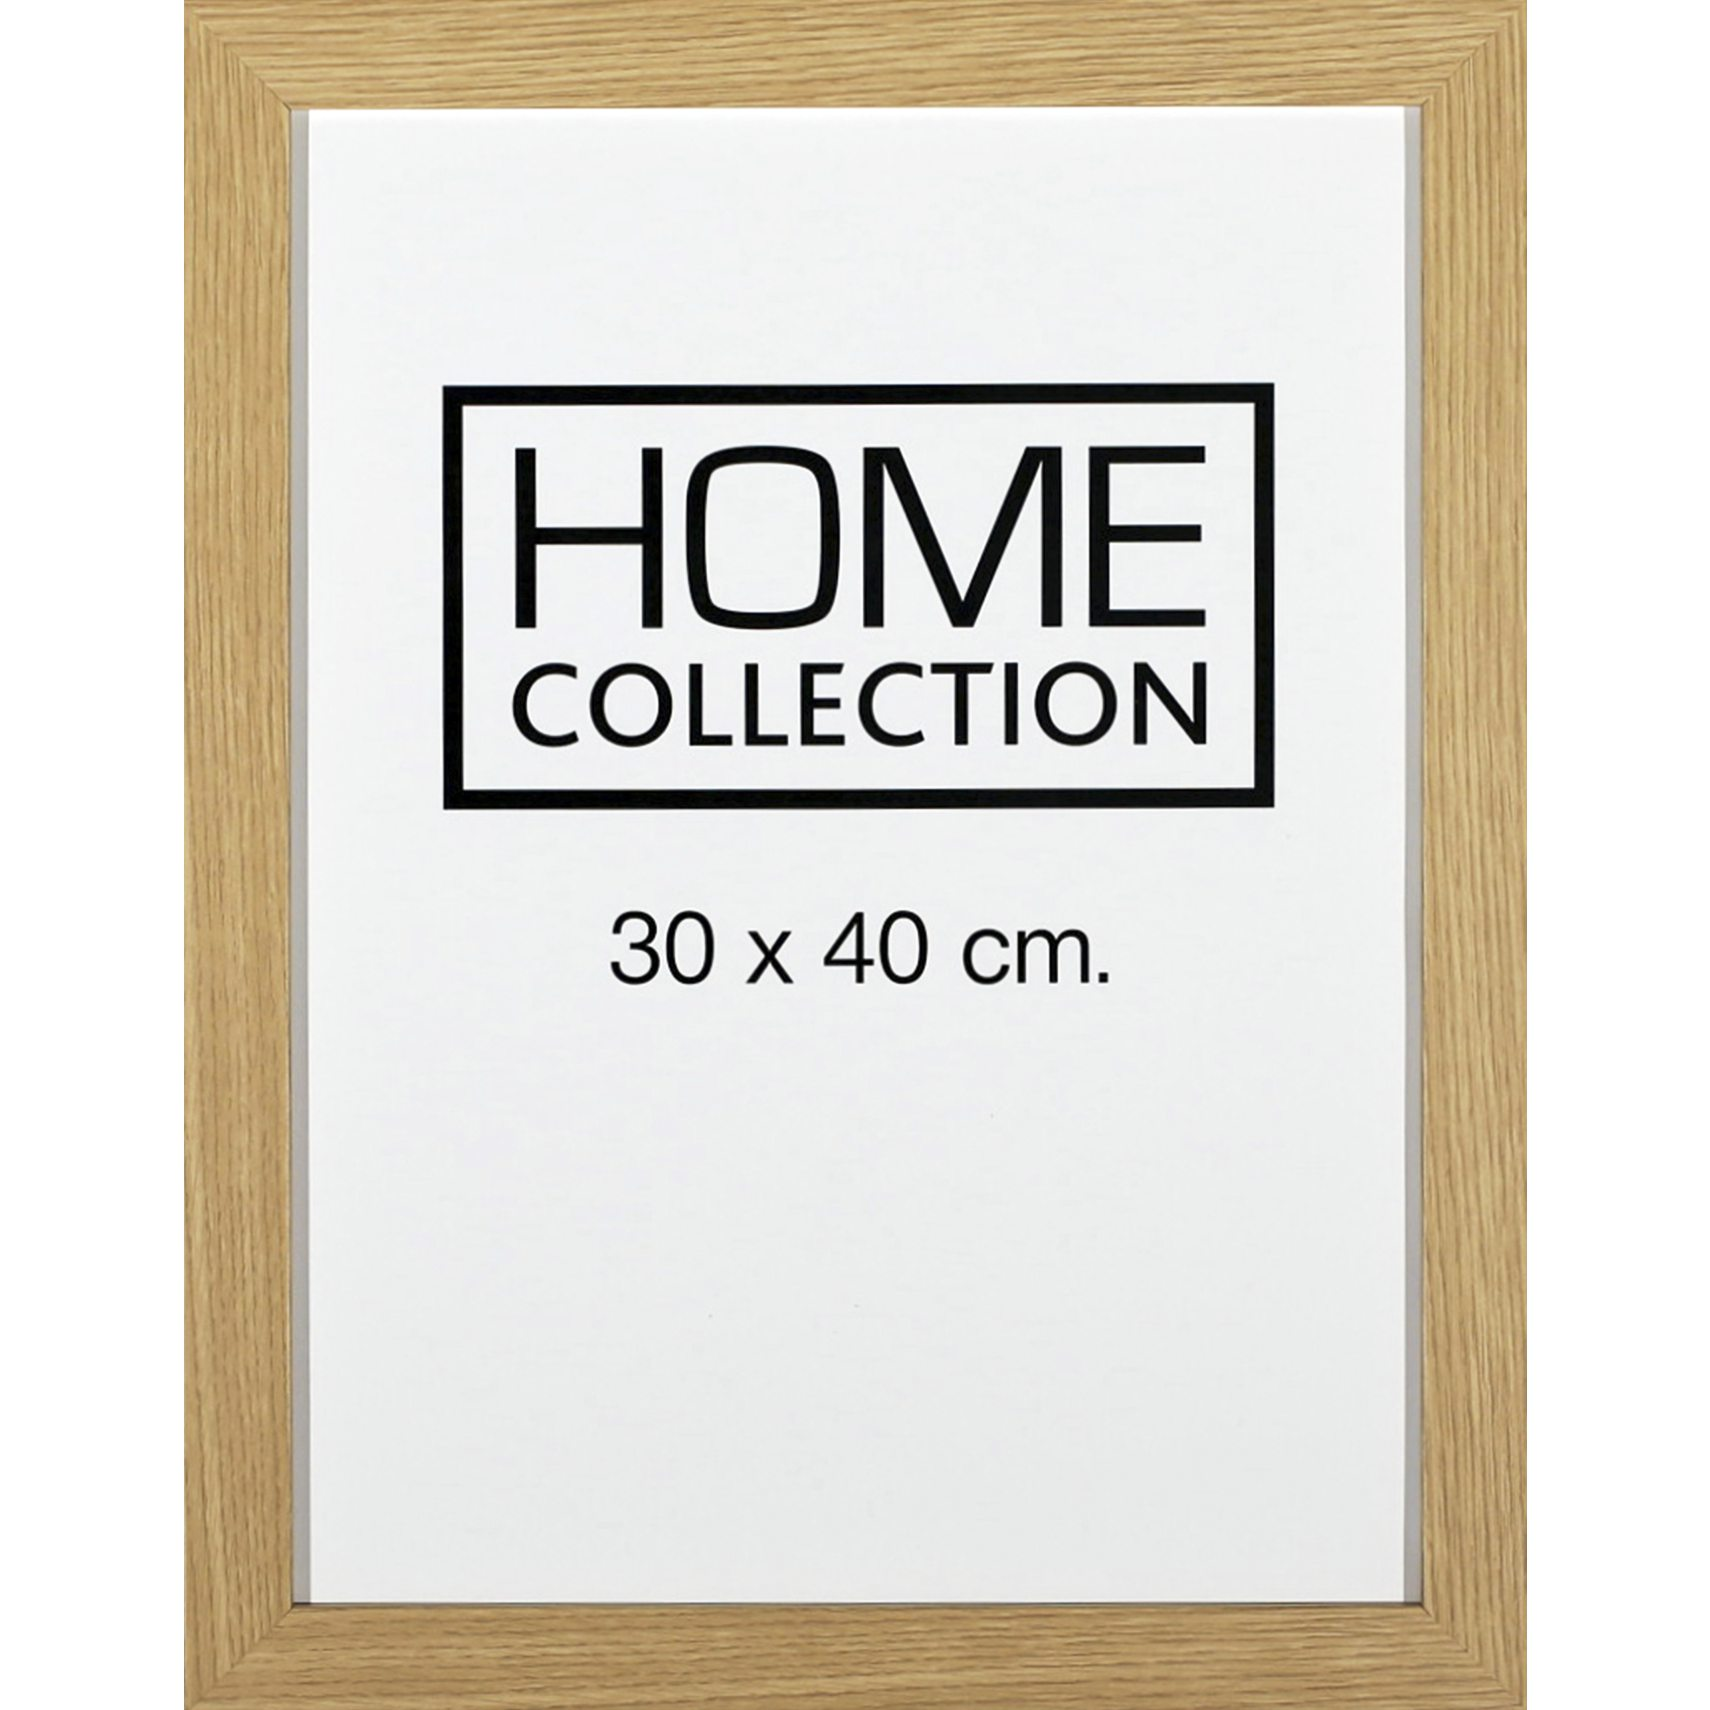 HOME COLLECTION Ram 30 x 40 x 2 cm - Ram i ekträ